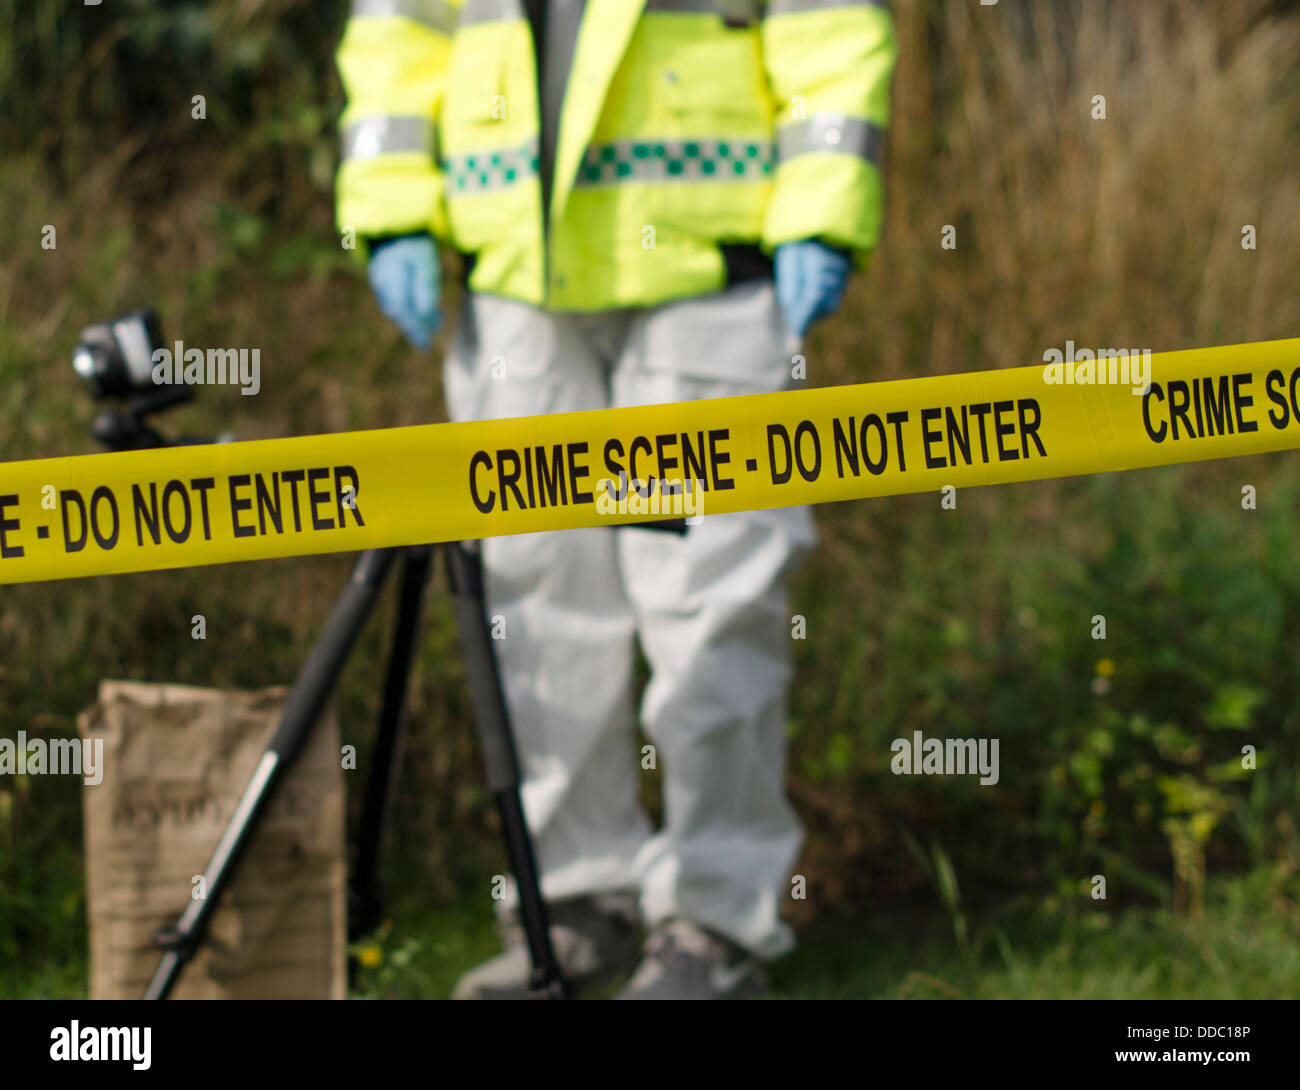 Detective checking for evidence behind a crime scene barrier - Stock Image